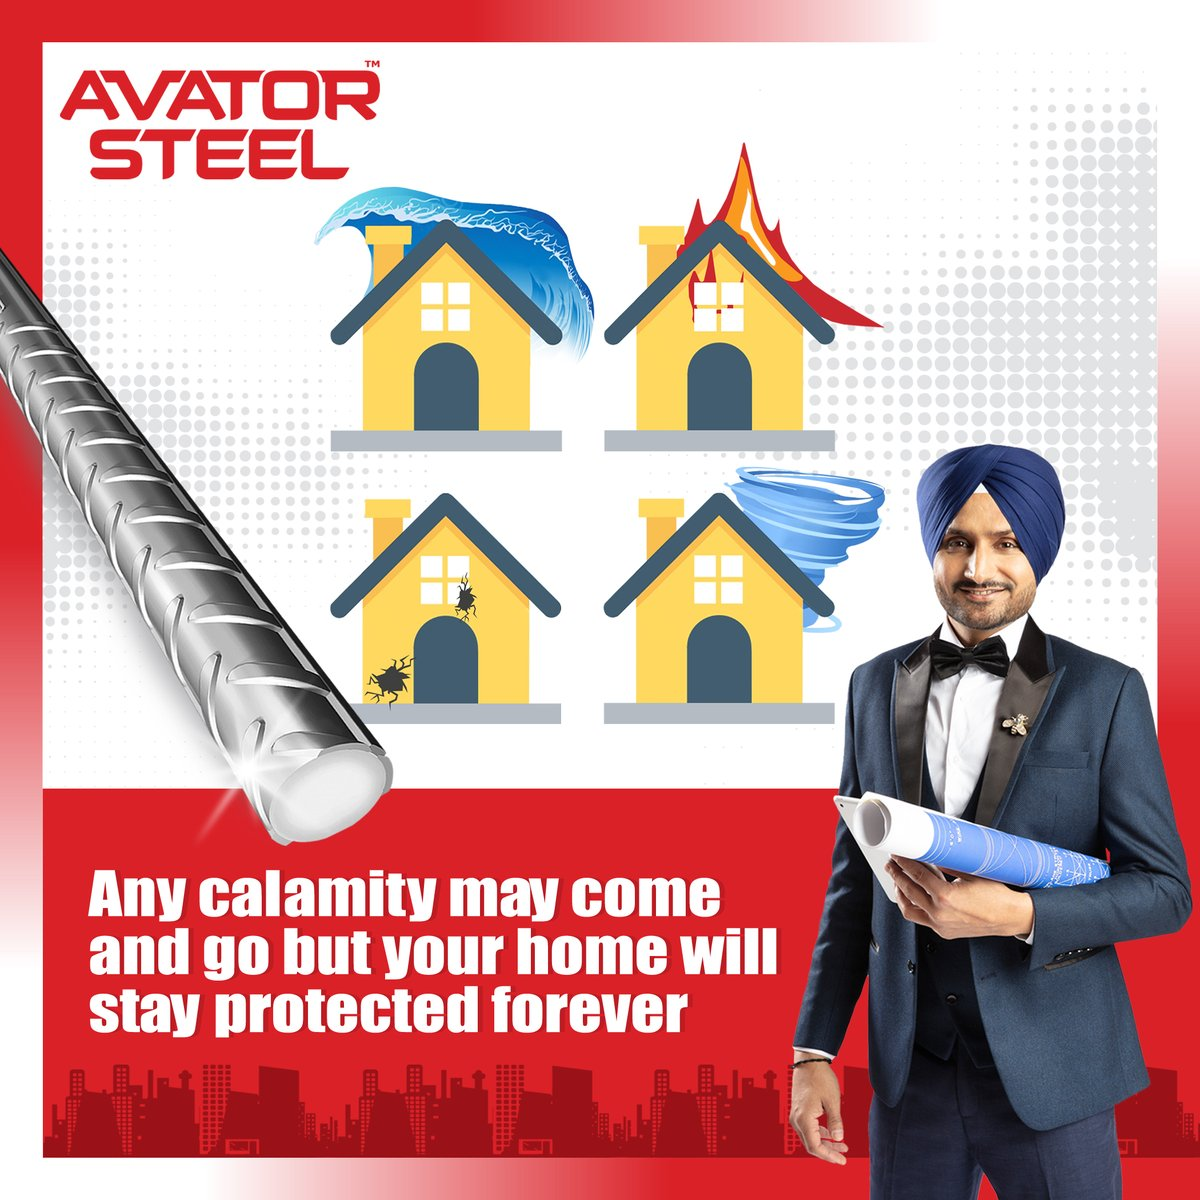 Calamities always come unannounced. Be prepared with the best in class TMT bars.  #AvatorSteel gives your home the ultimate protection against corrosion, fire, or earthquake.   #HarbhajanSingh #DreamHomes #FireResistant #earthquakeproof #CorrosionFree  @harbhajan_singh